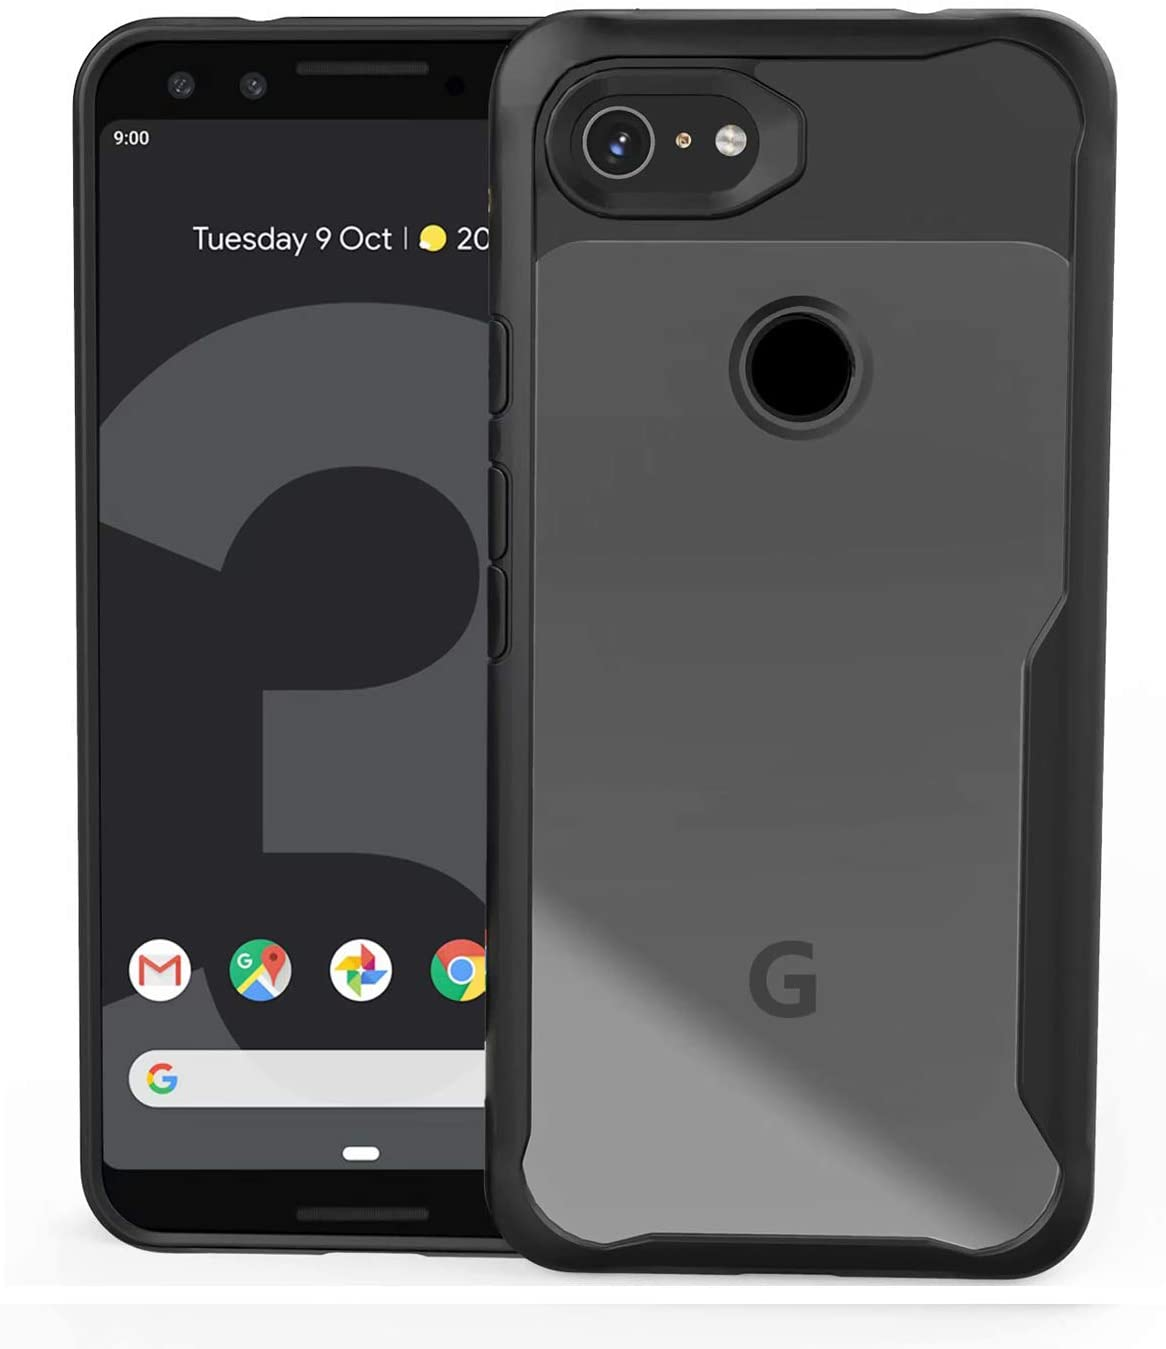 Lxlfcase for Google Pixel 3A Case 5.6inch (2019) Ultra-Thin Hybrid Cover Cases Shockproof Phone Case Designed for Google Pixel 3A (for Pixel 3A, Black+Clear)